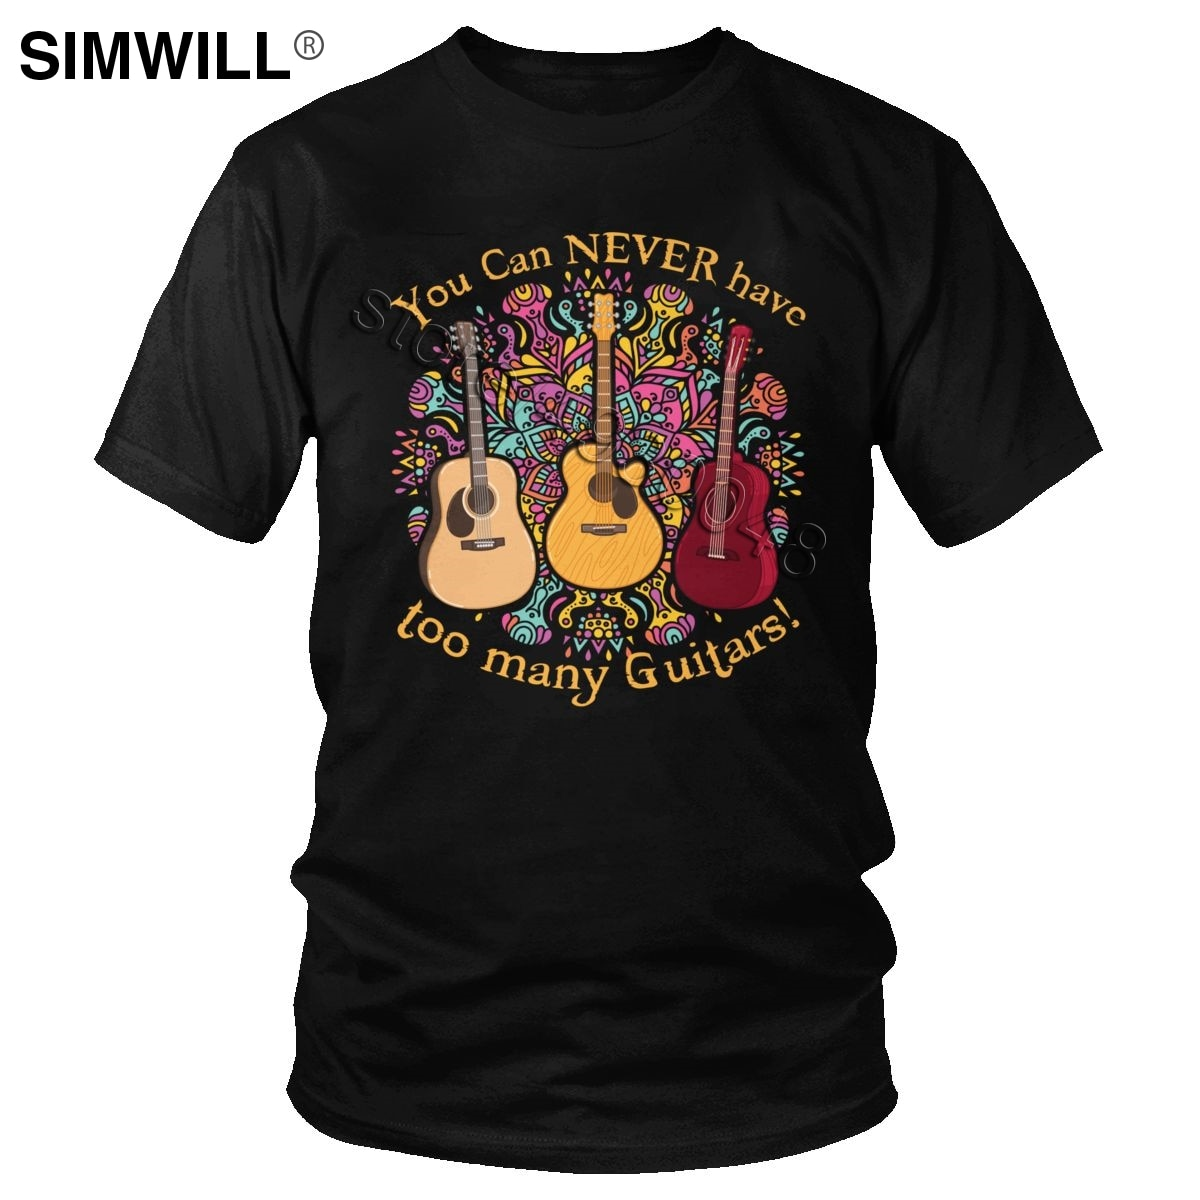 Fashion You Can Never Have Too Many Guitars T-Shirt Men Casual Short Sleeve Cotton Tee Graphic Print T Shirt for Guitarist Gift